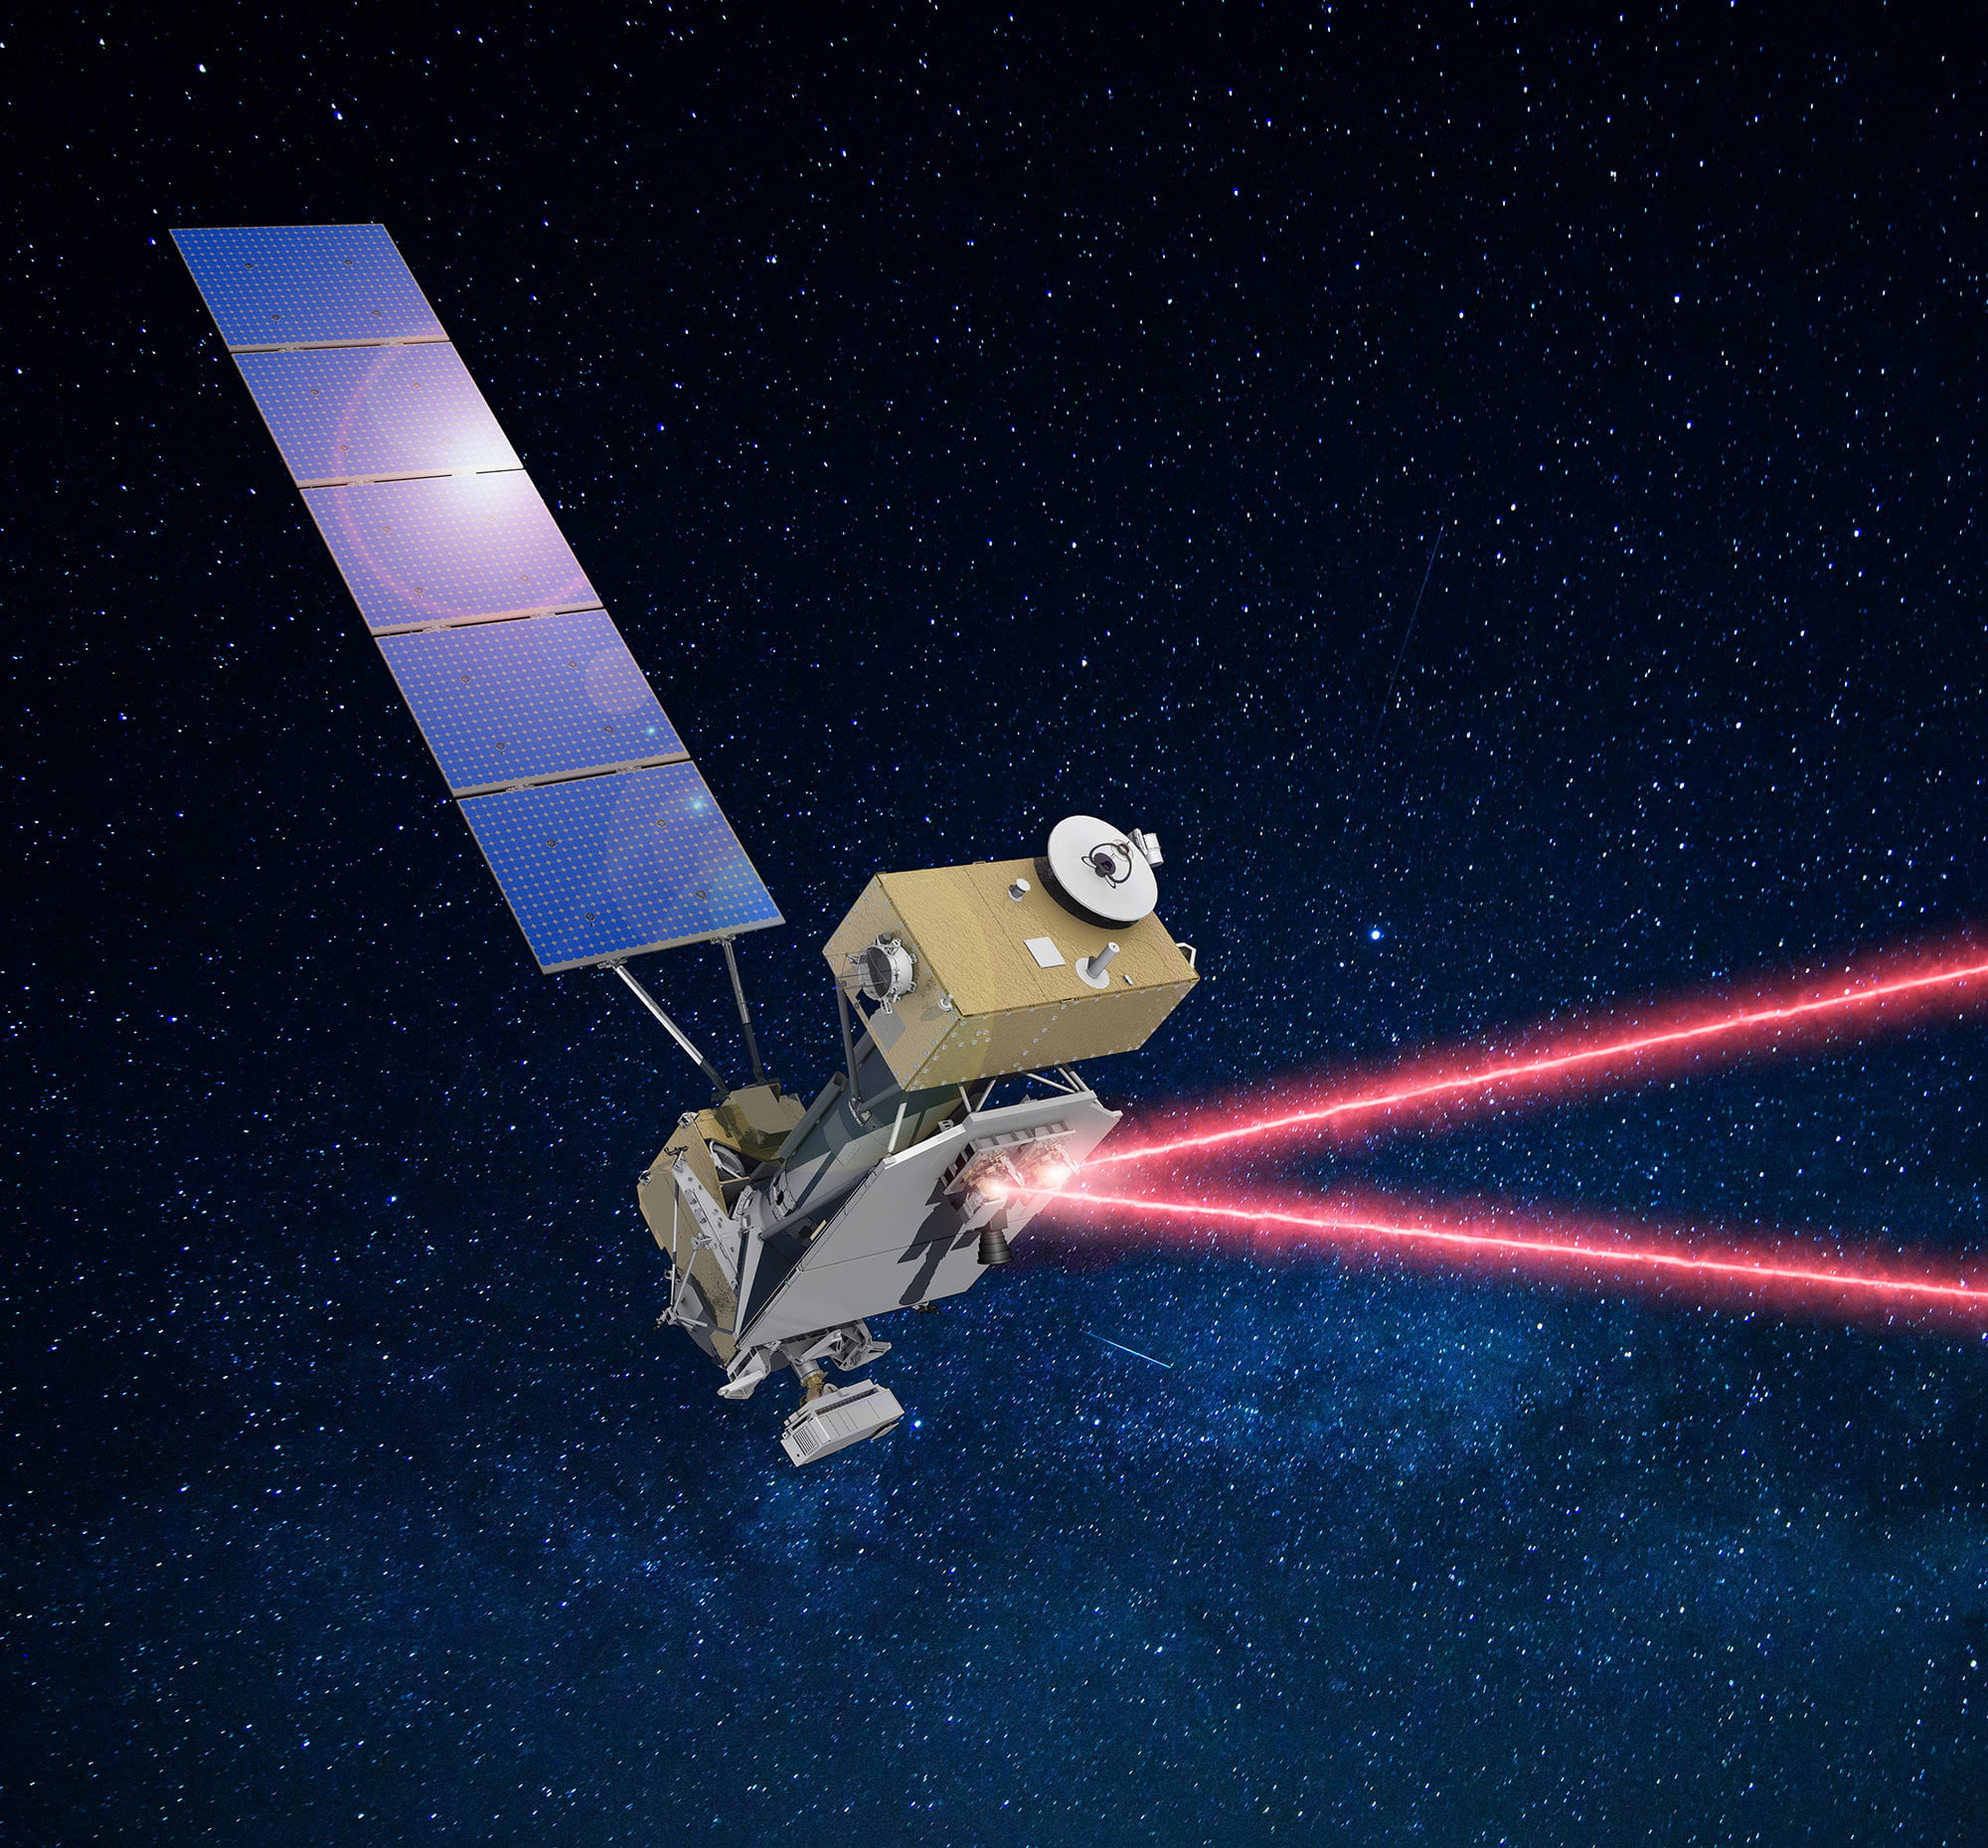 NASA is testing a new laser communications system this summer